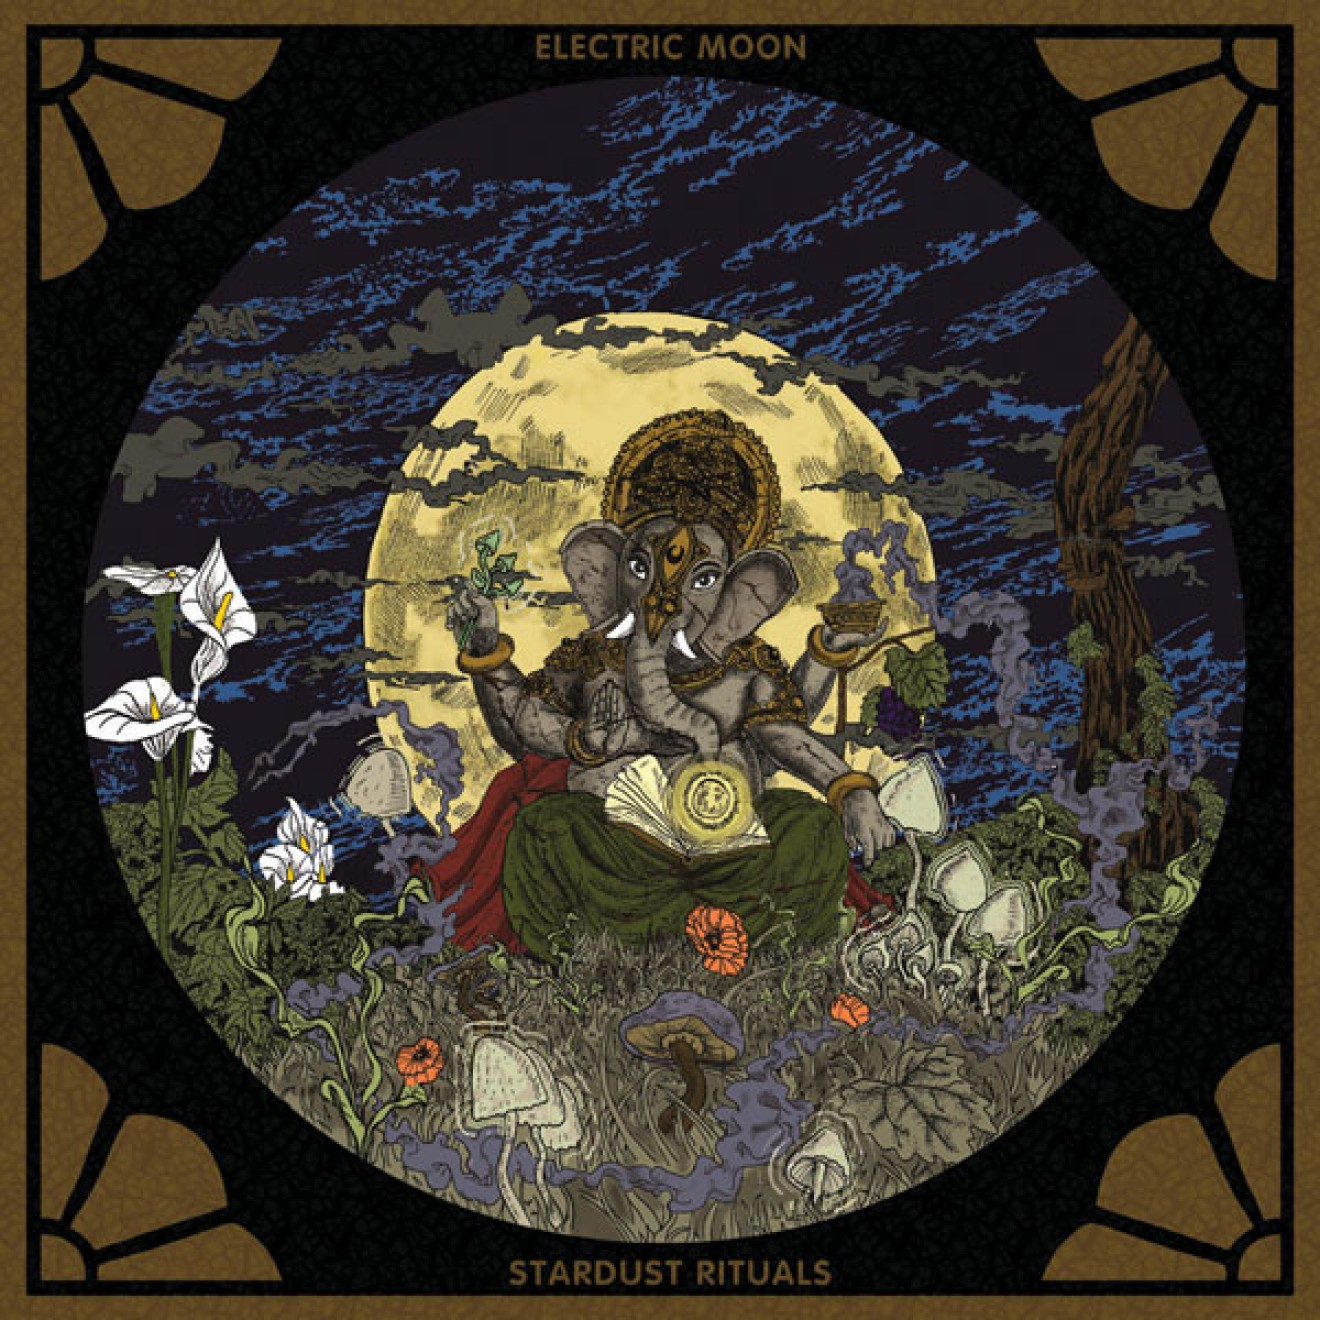 ELECTRIC MOON - stardust rituals CD